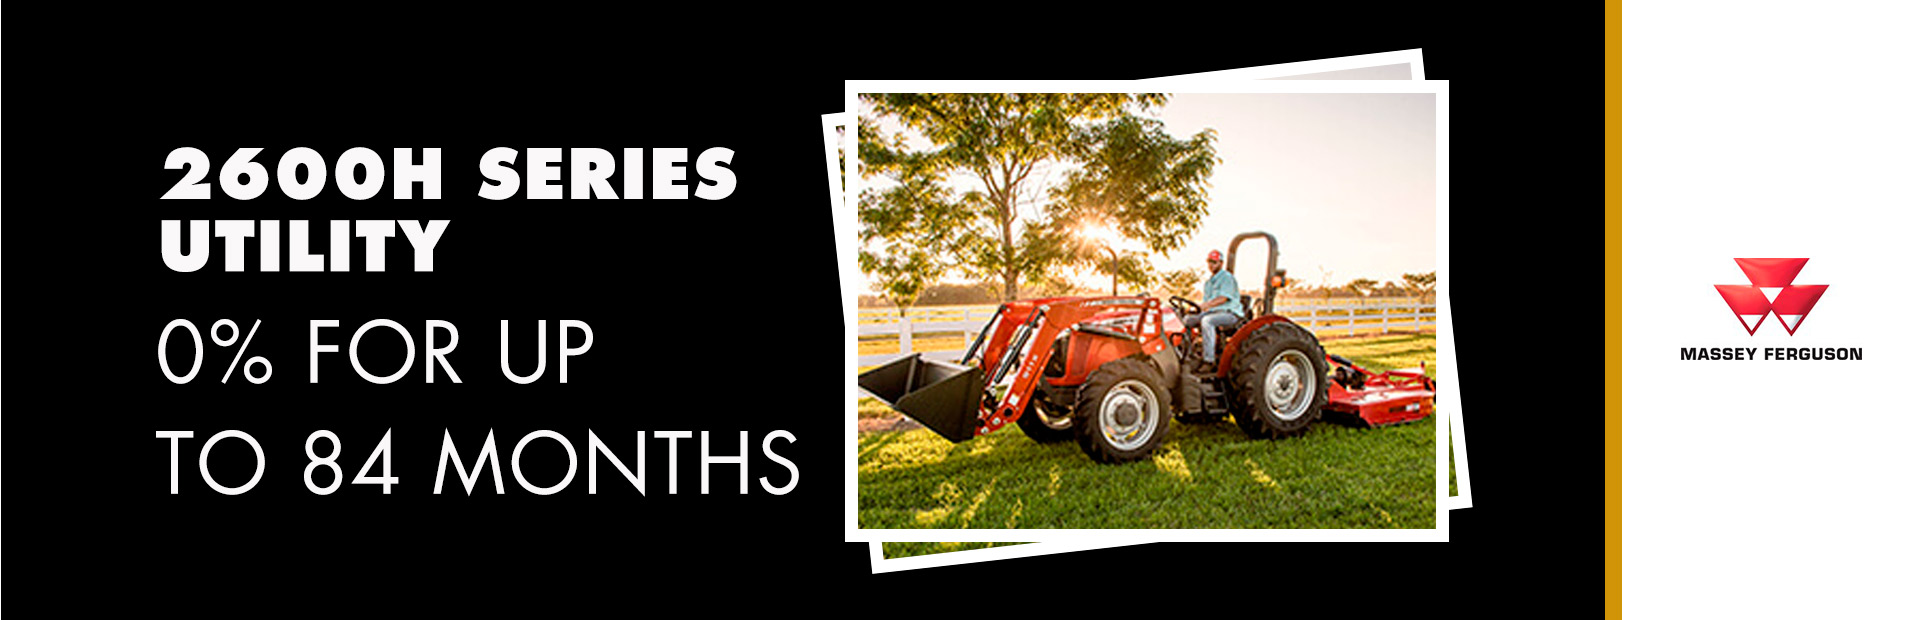 Massey Ferguson: 2600H Series Utility - 0% for up to 84 Months